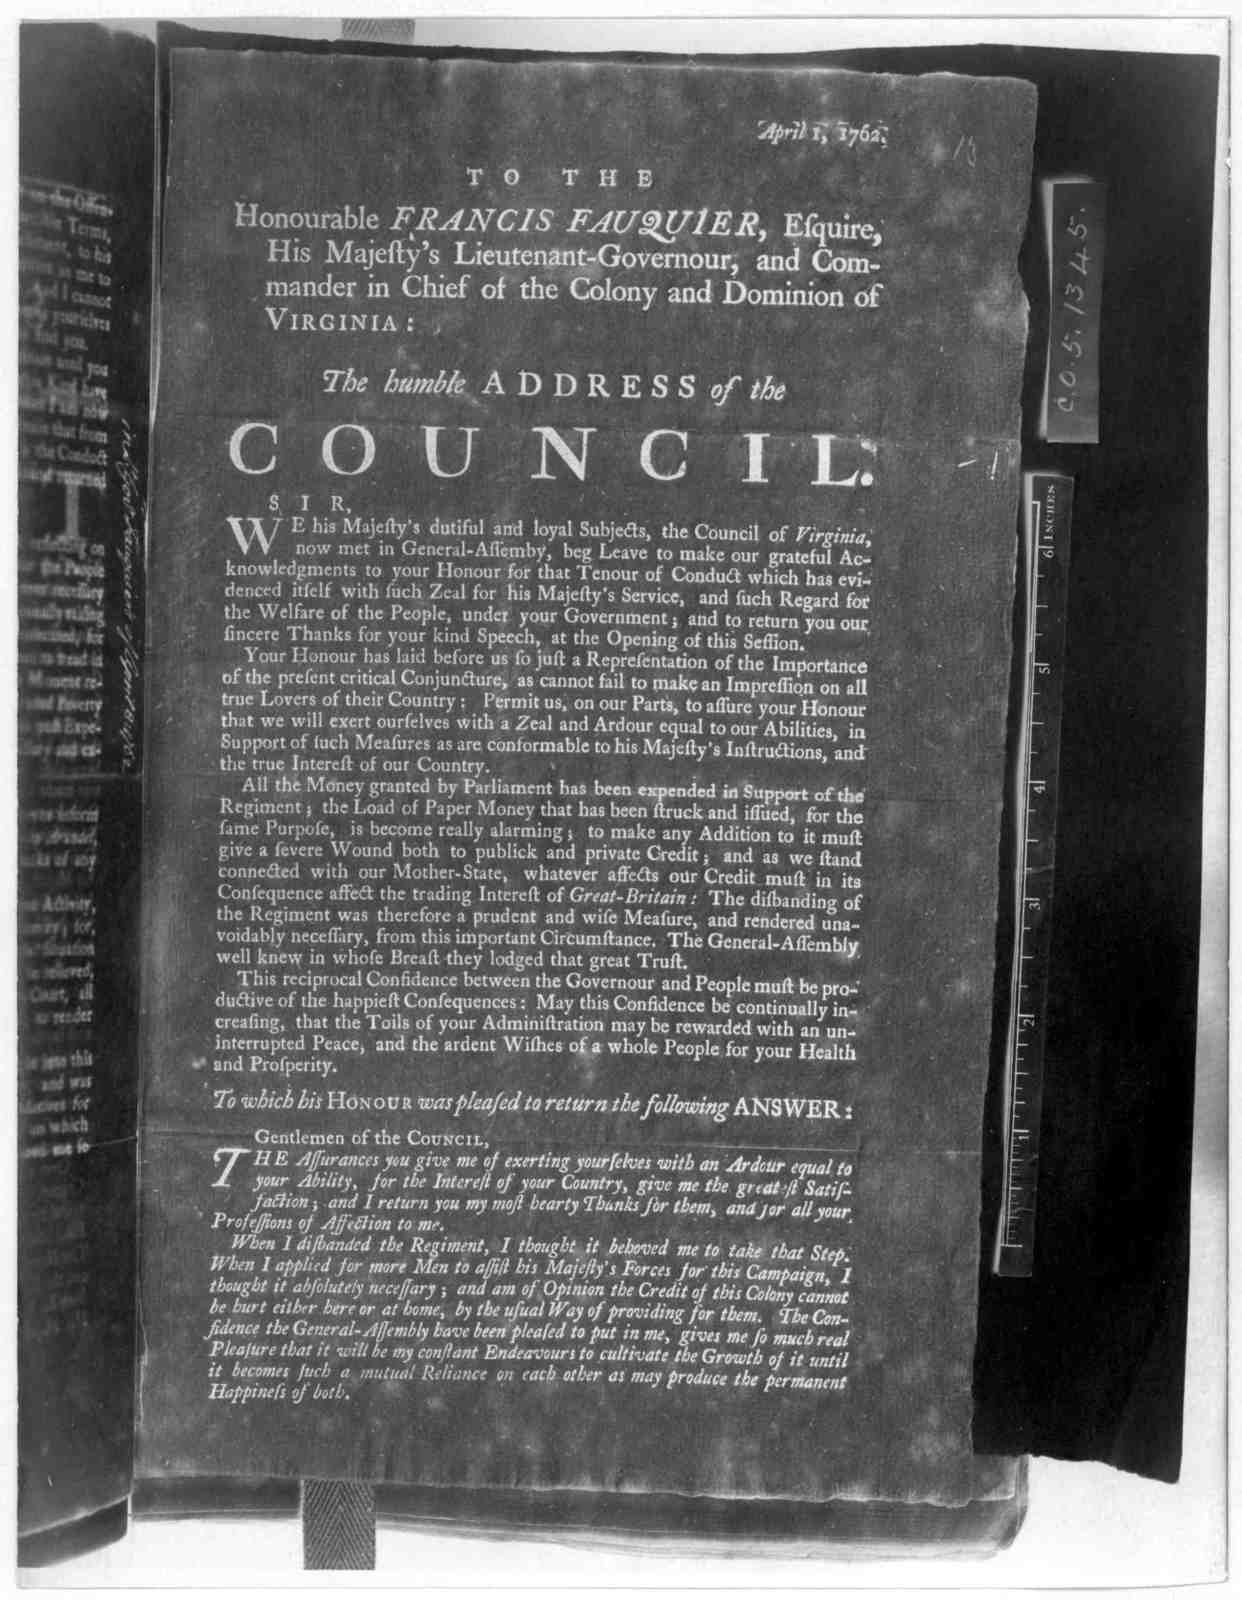 April 1, 1762. To the Honourable Francis Fauquier, Esquire, His Majesty's Lieutenant-governour, and Commander in chief of the Colony and Dominion of Virginia: The humble address of the Council ... to which his Honour was pleased to return the fo